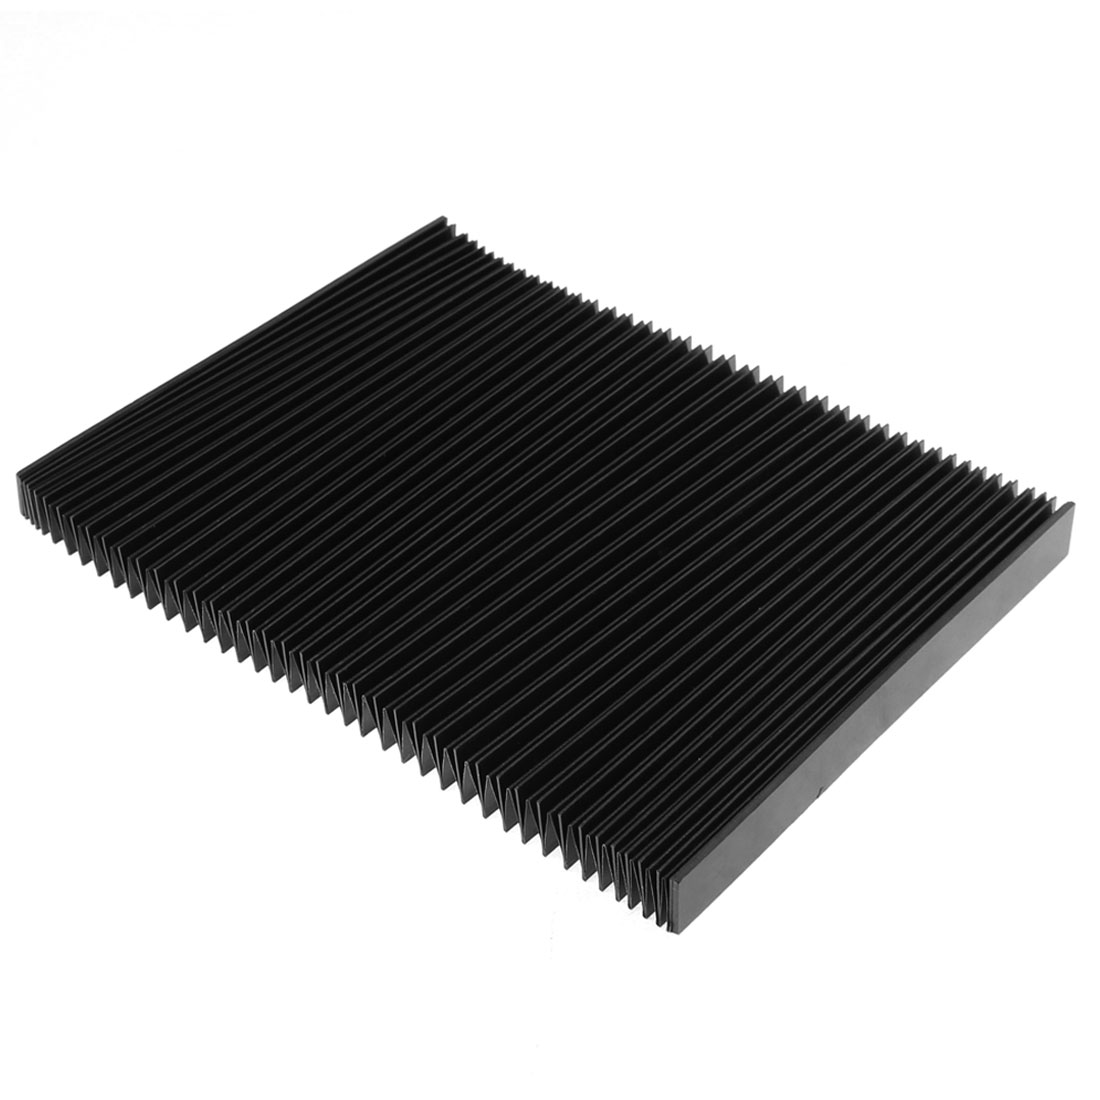 CNC Machine Stretchy Rubber Accordion Dust Cover Protector Black